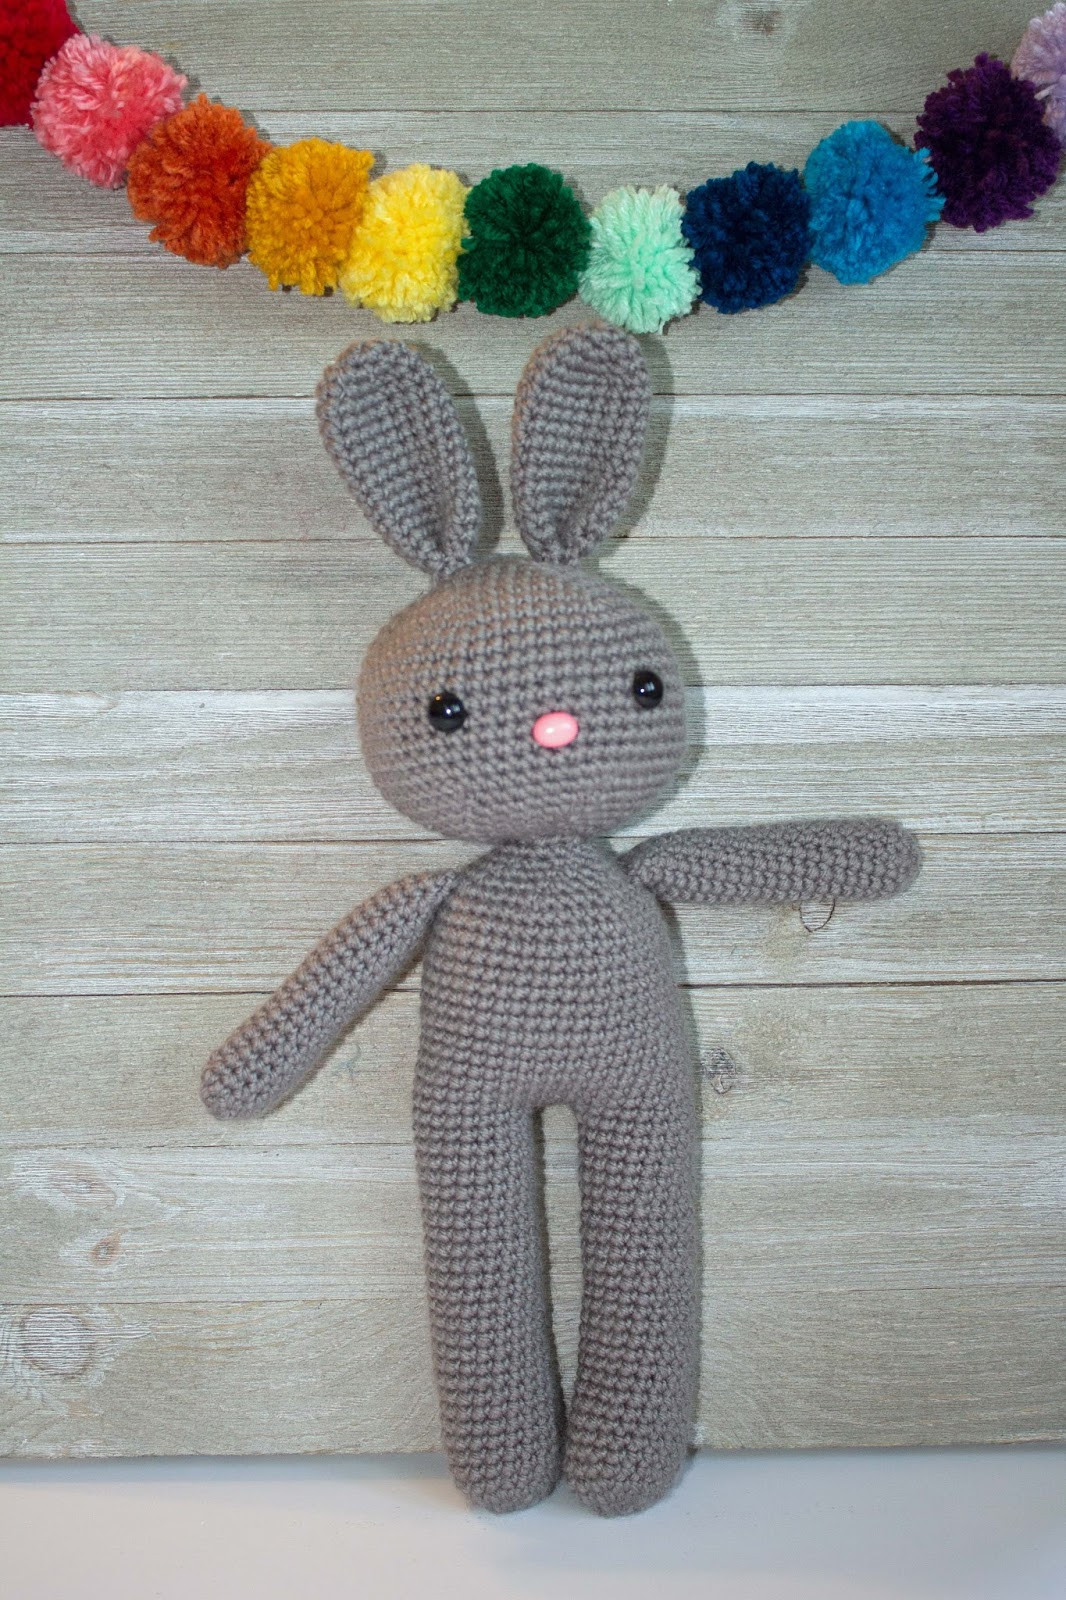 Crochet Patterns Awesome Free Crochet Pattern Bunny Amigurumi thefriendlyredfox Of Charming 50 Models Crochet Patterns